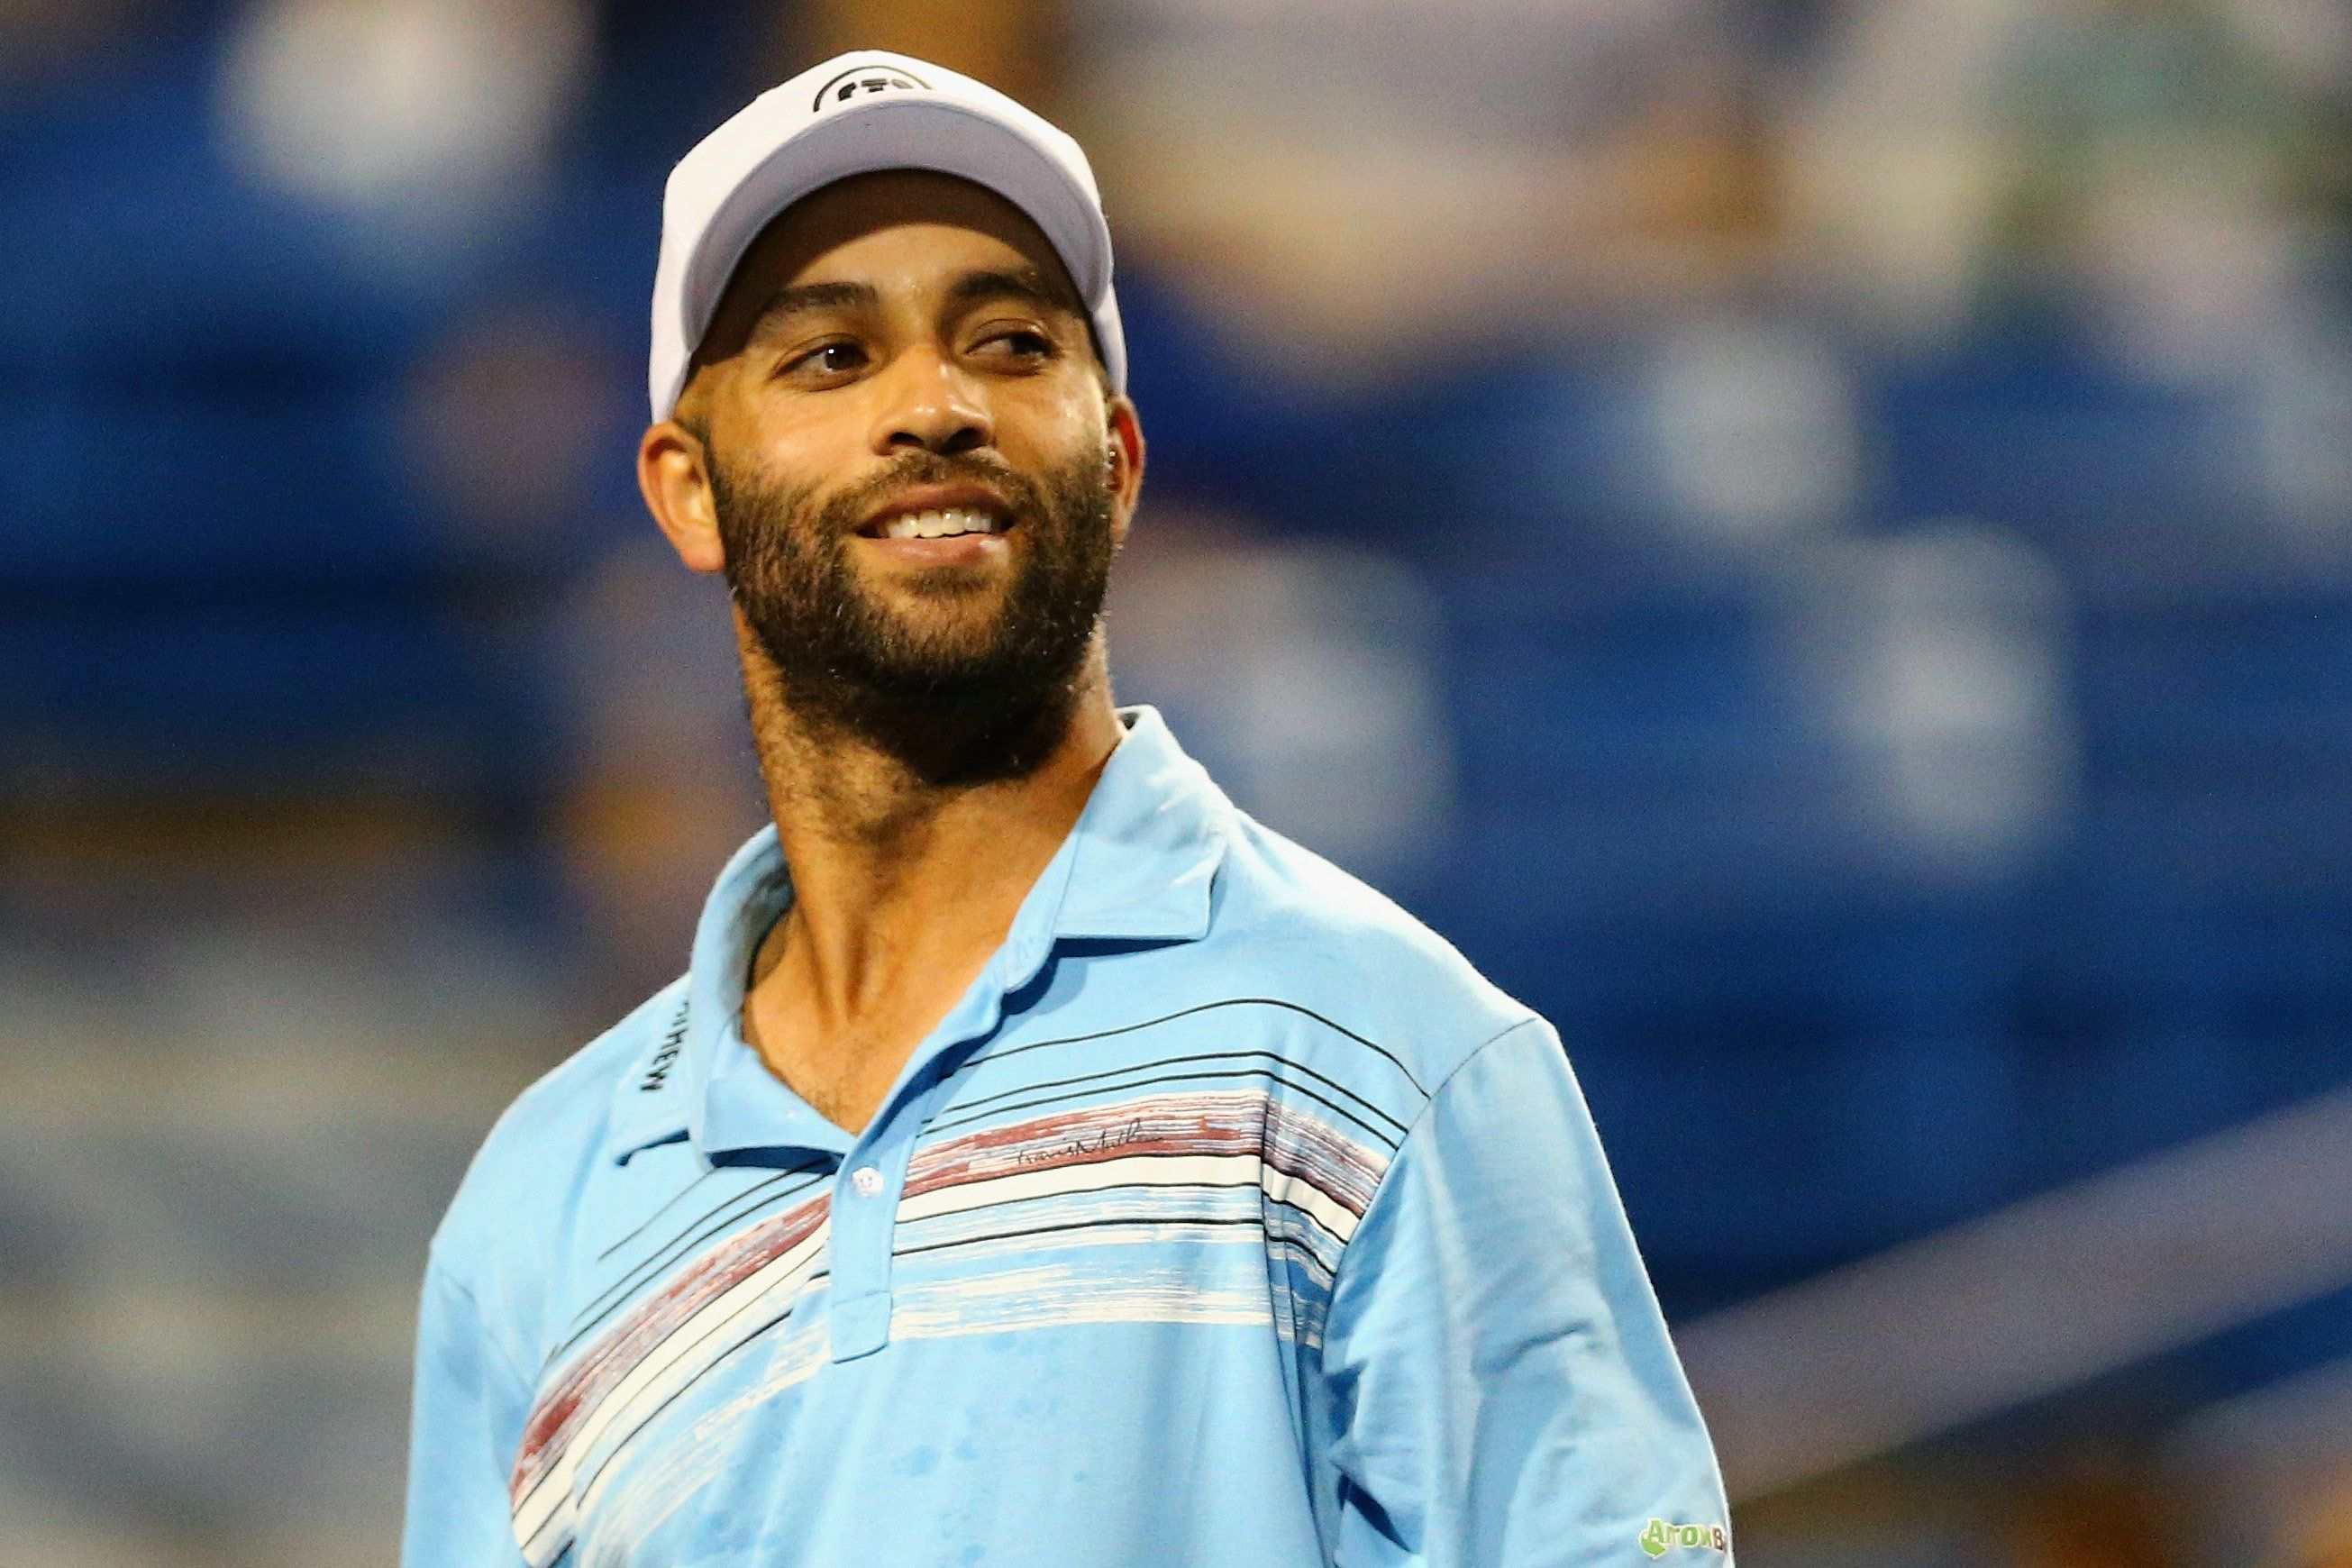 James Blake was tackled by OfficerJames Frascatore outside of a Manhattan hotel in 2015.